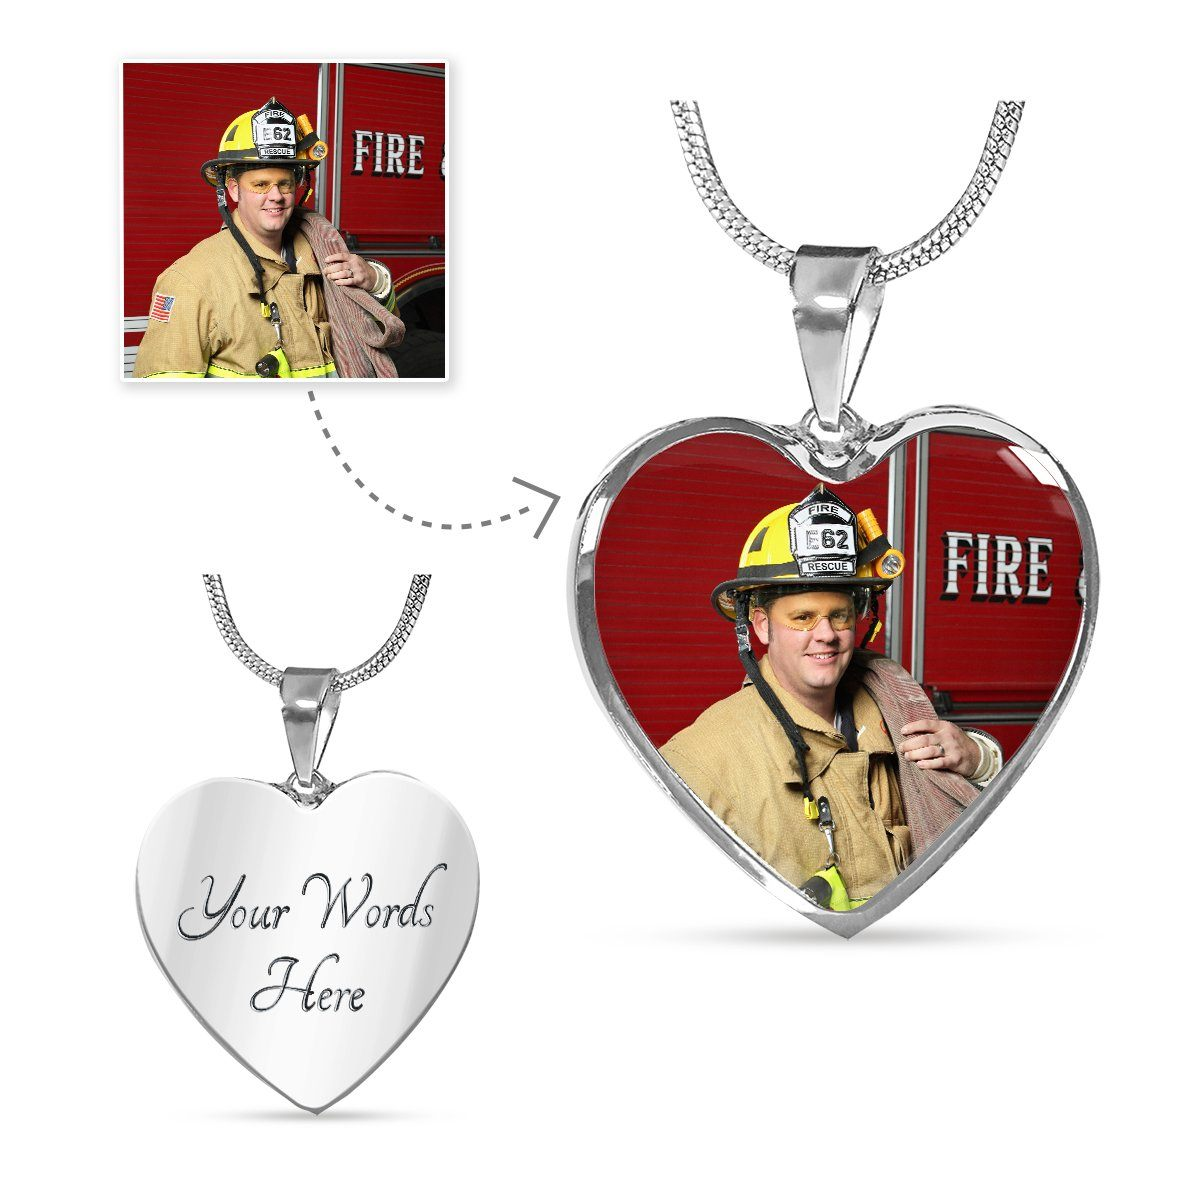 Firefighter Personalized Photo Heart Necklace - Heroic Defender